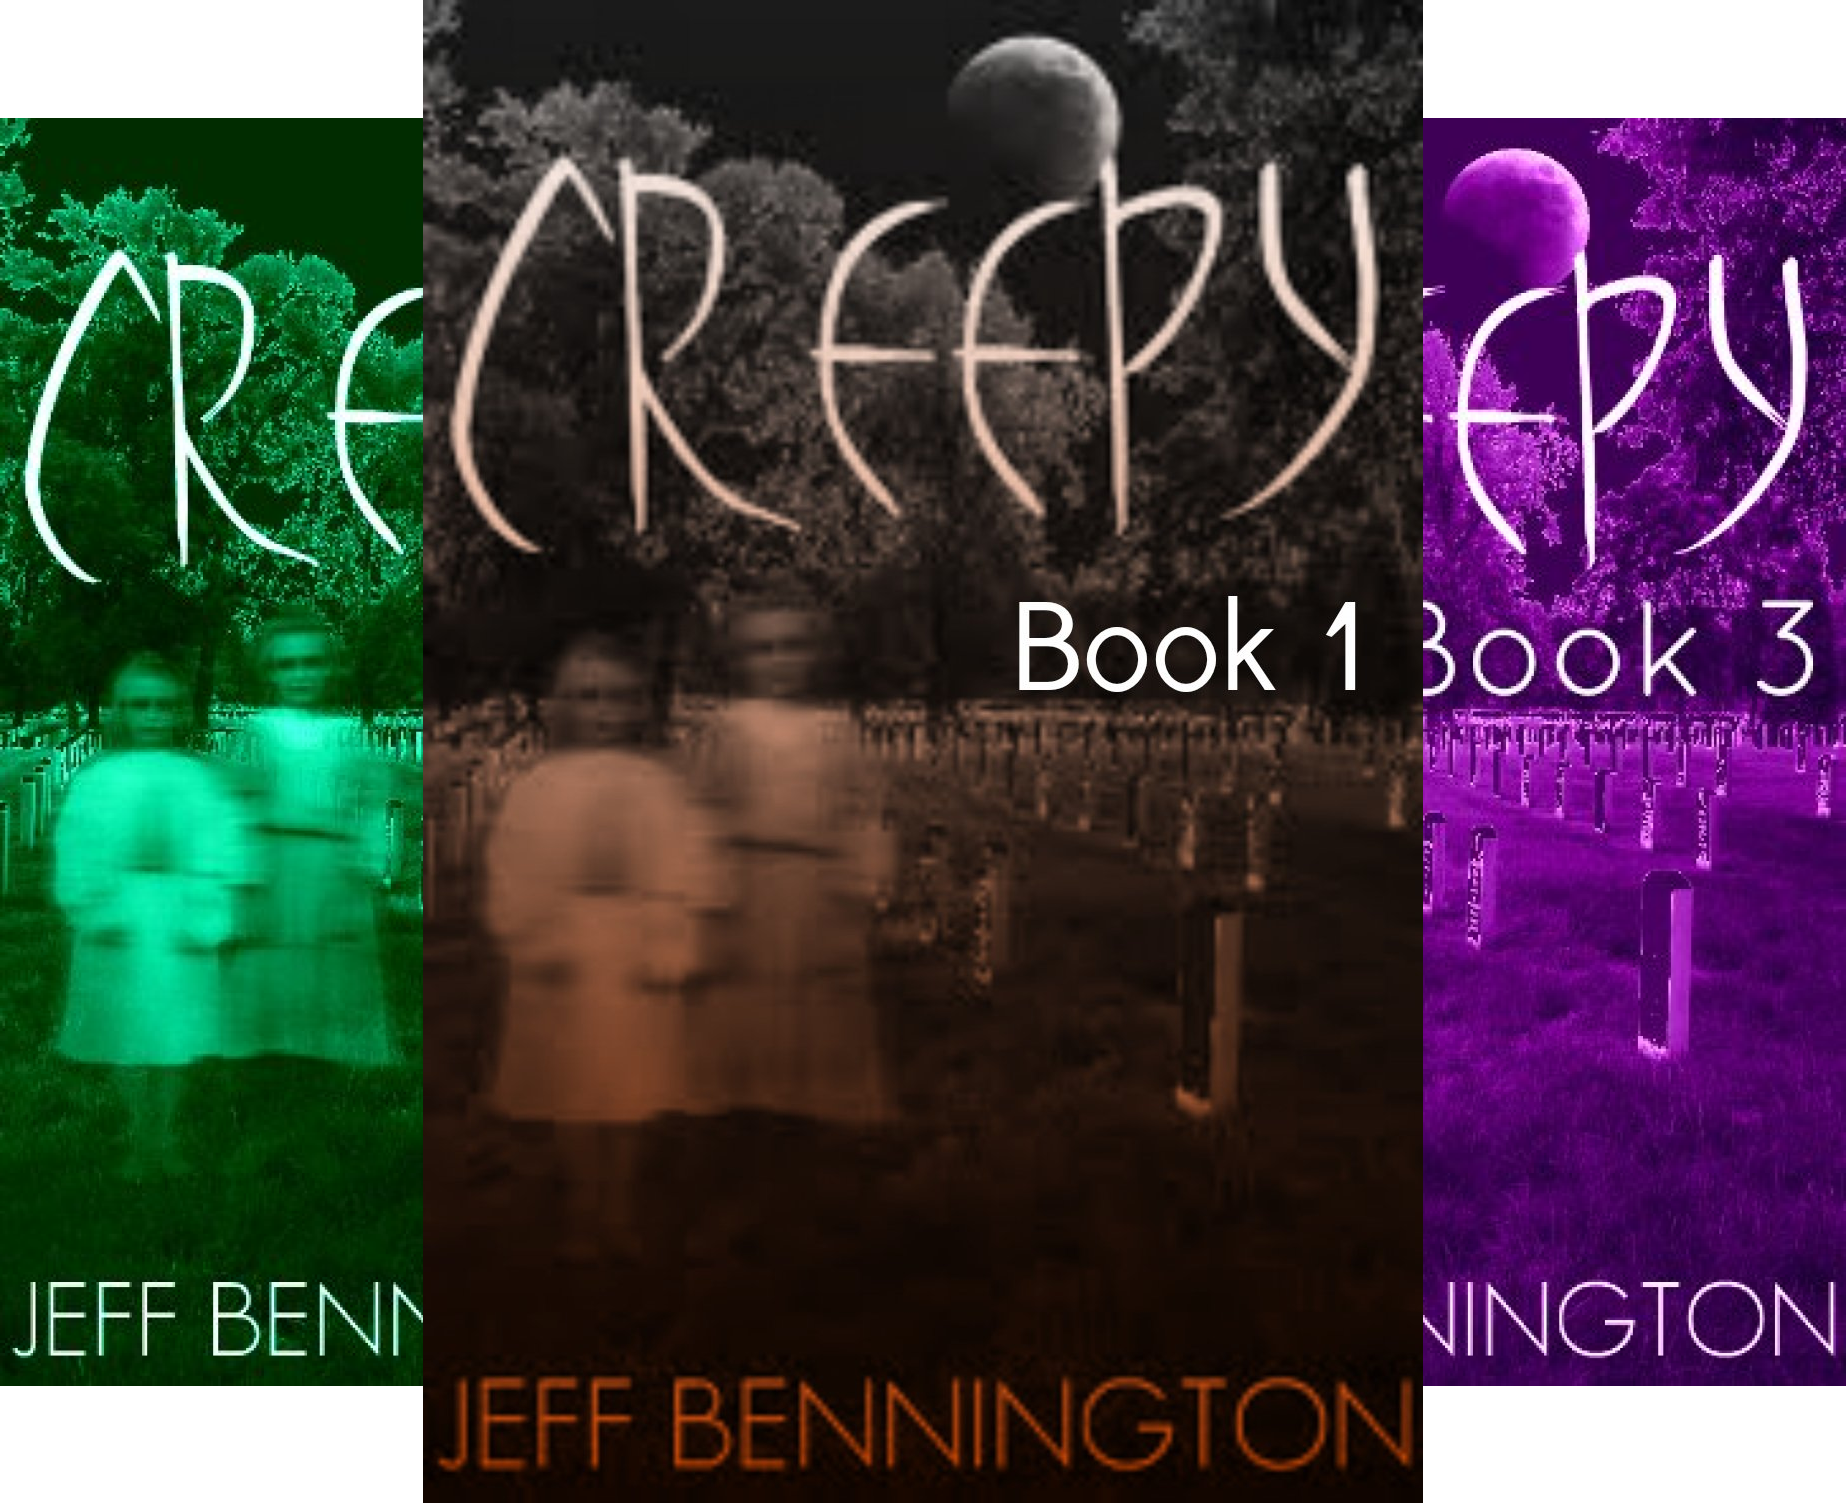 Book cover from Creepy Series (3 Book Series) by Jeff Bennington